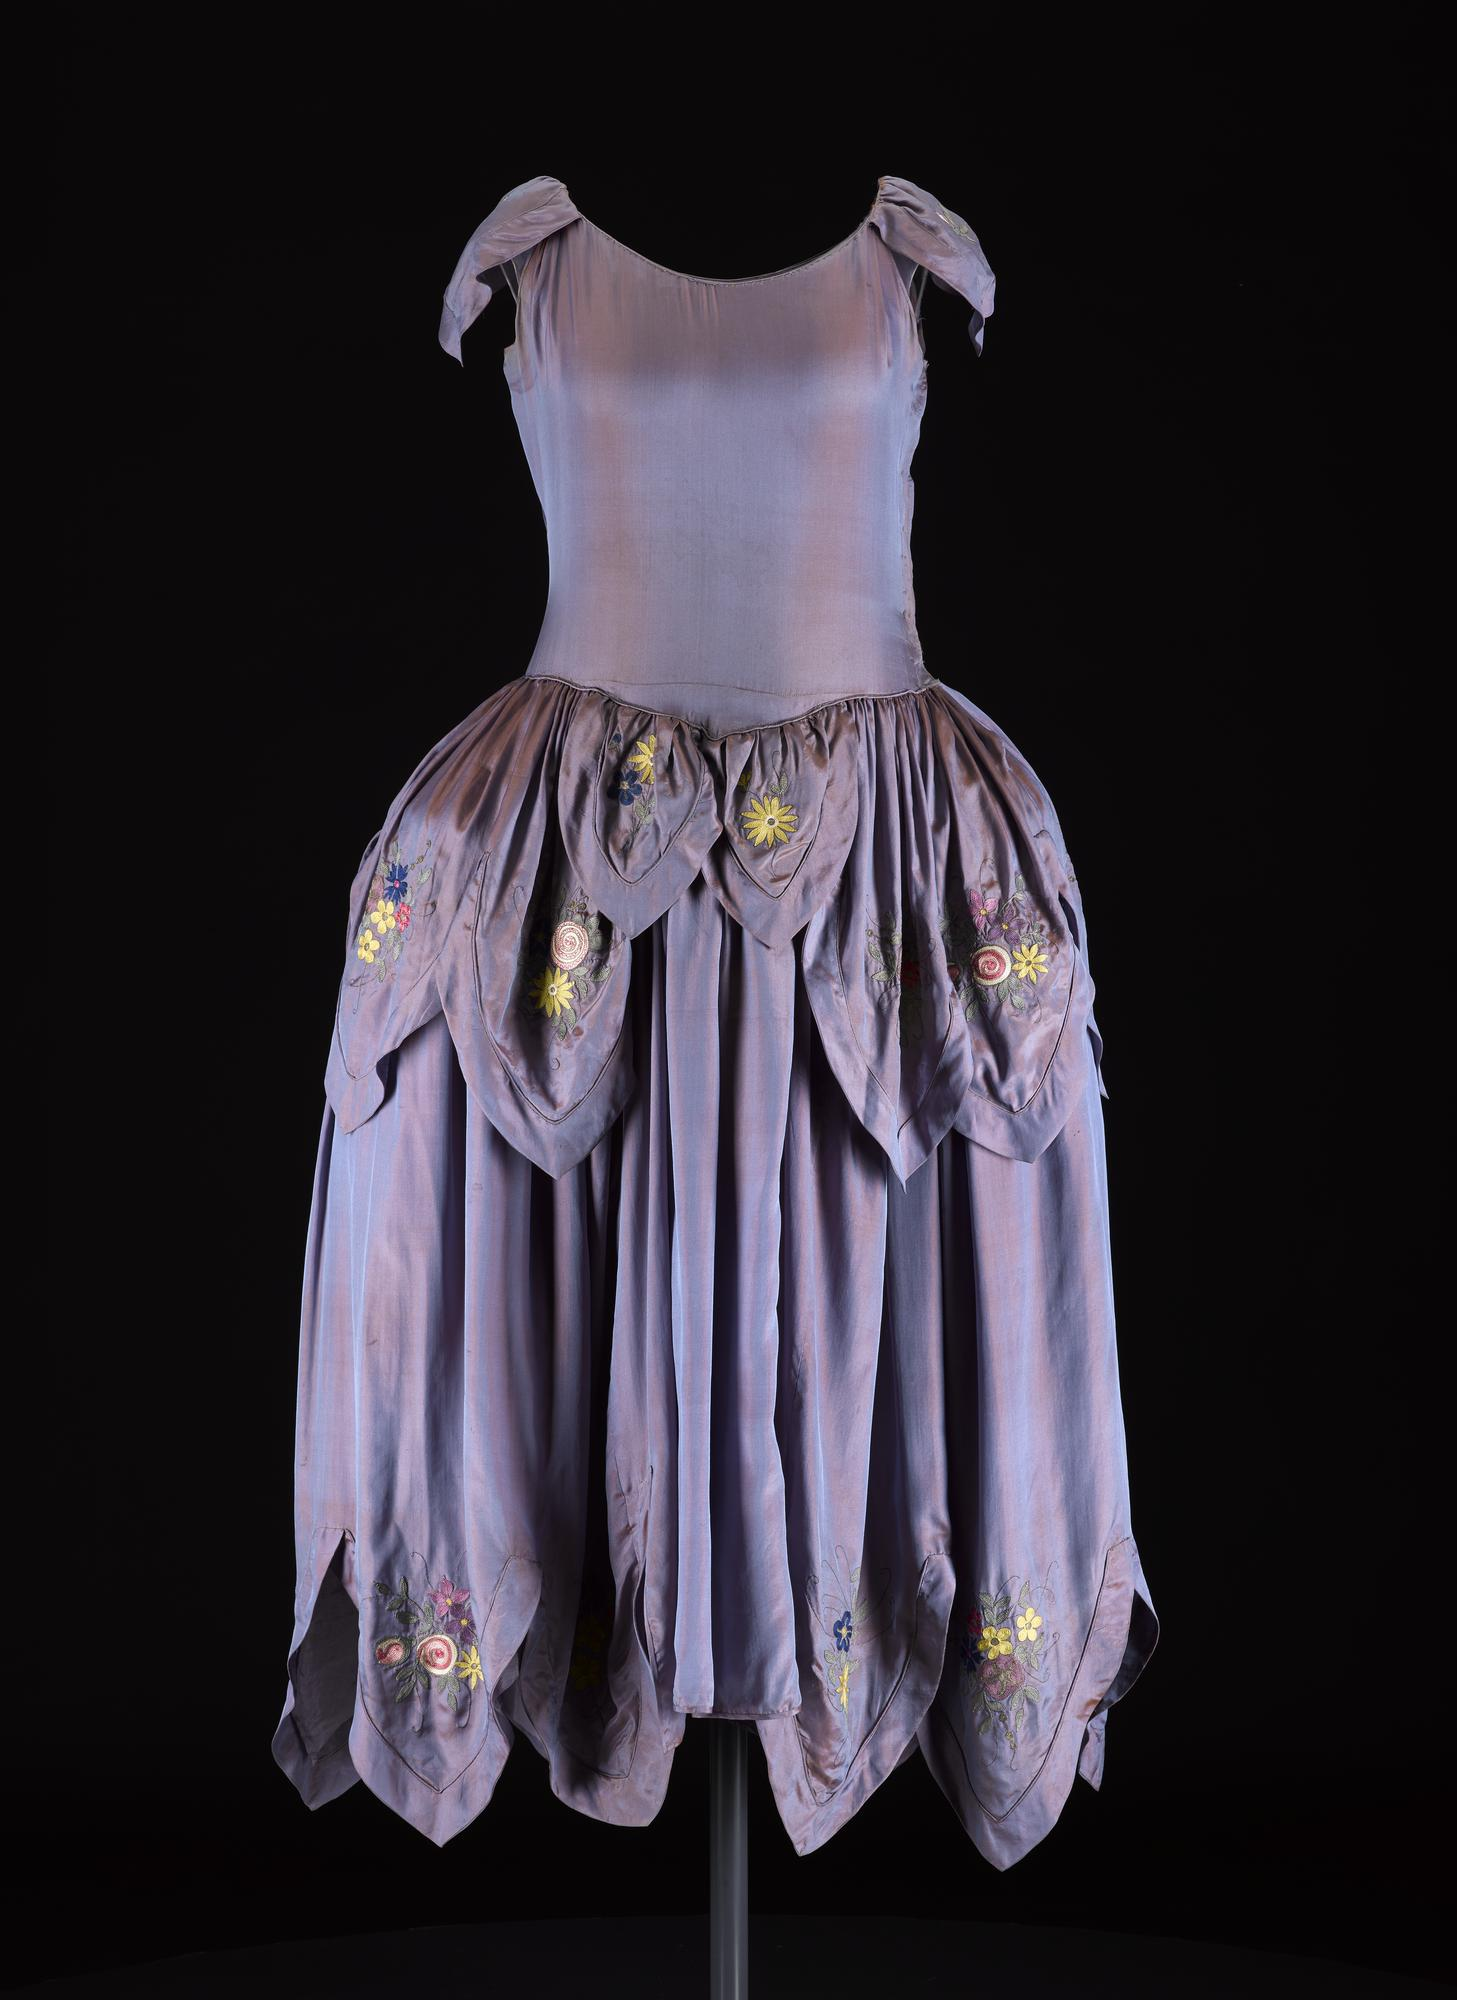 Women's robe de style dress, in 'bleu de lanvin' irridescent (or shot) blue silk, with multicoloured floral embroidery at the hem and hips, featuring cap sleeves, a dropped waist with full pannier hips and a 'petal-shaped' hemline: France, Paris, designed by Lanvin, c. 1924.